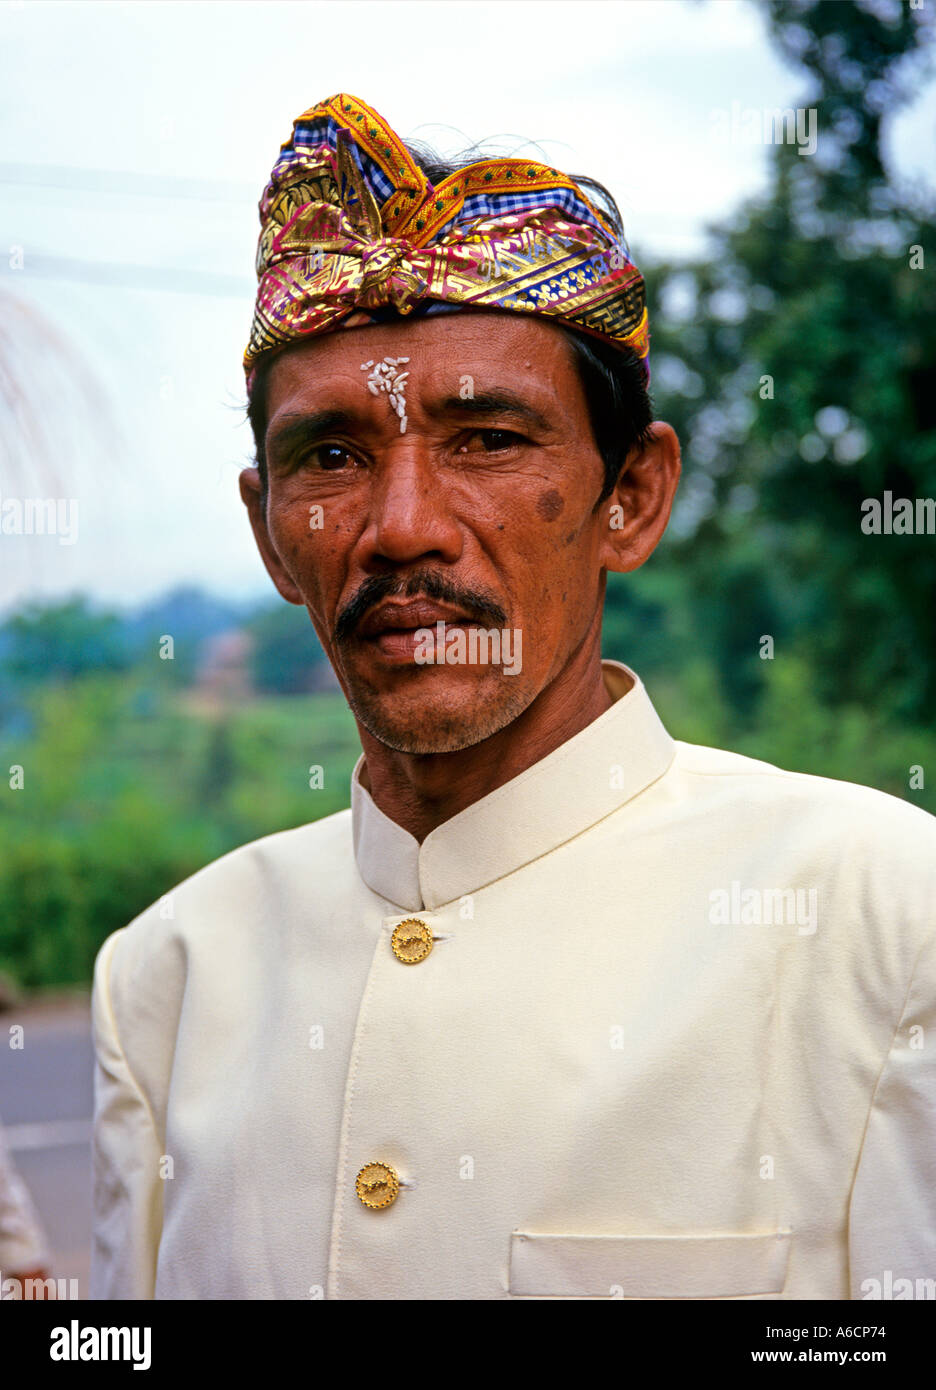 Indonesia Bali Kedewatan Karya Agung festival man in traditional headgear -  Stock Image 5e86da15f98